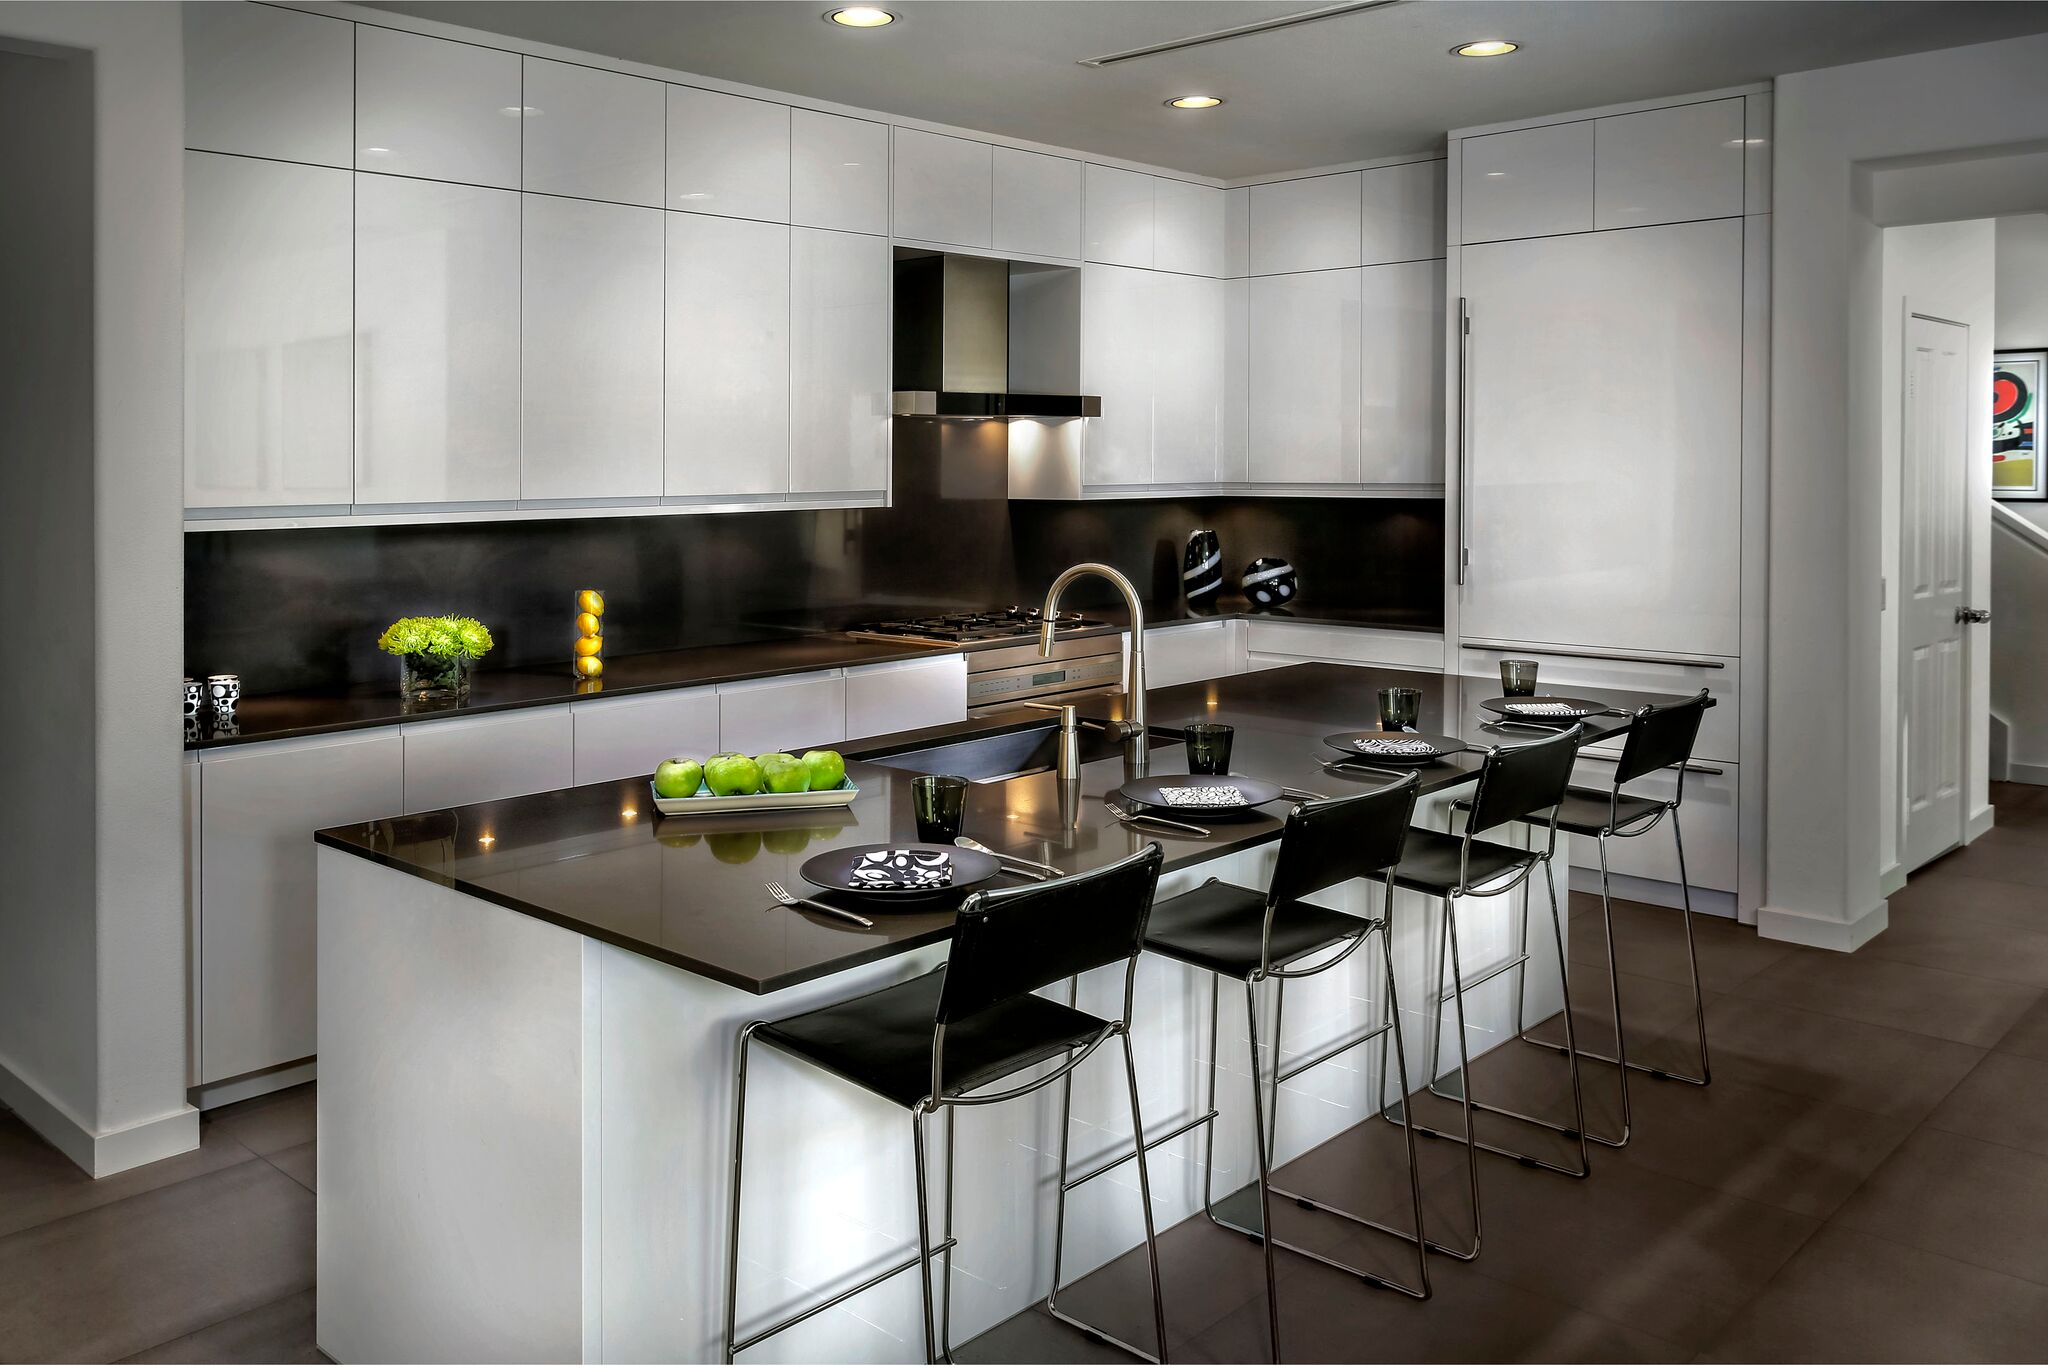 Laguna Beach Contemporary kitchen in high gloss lacquer